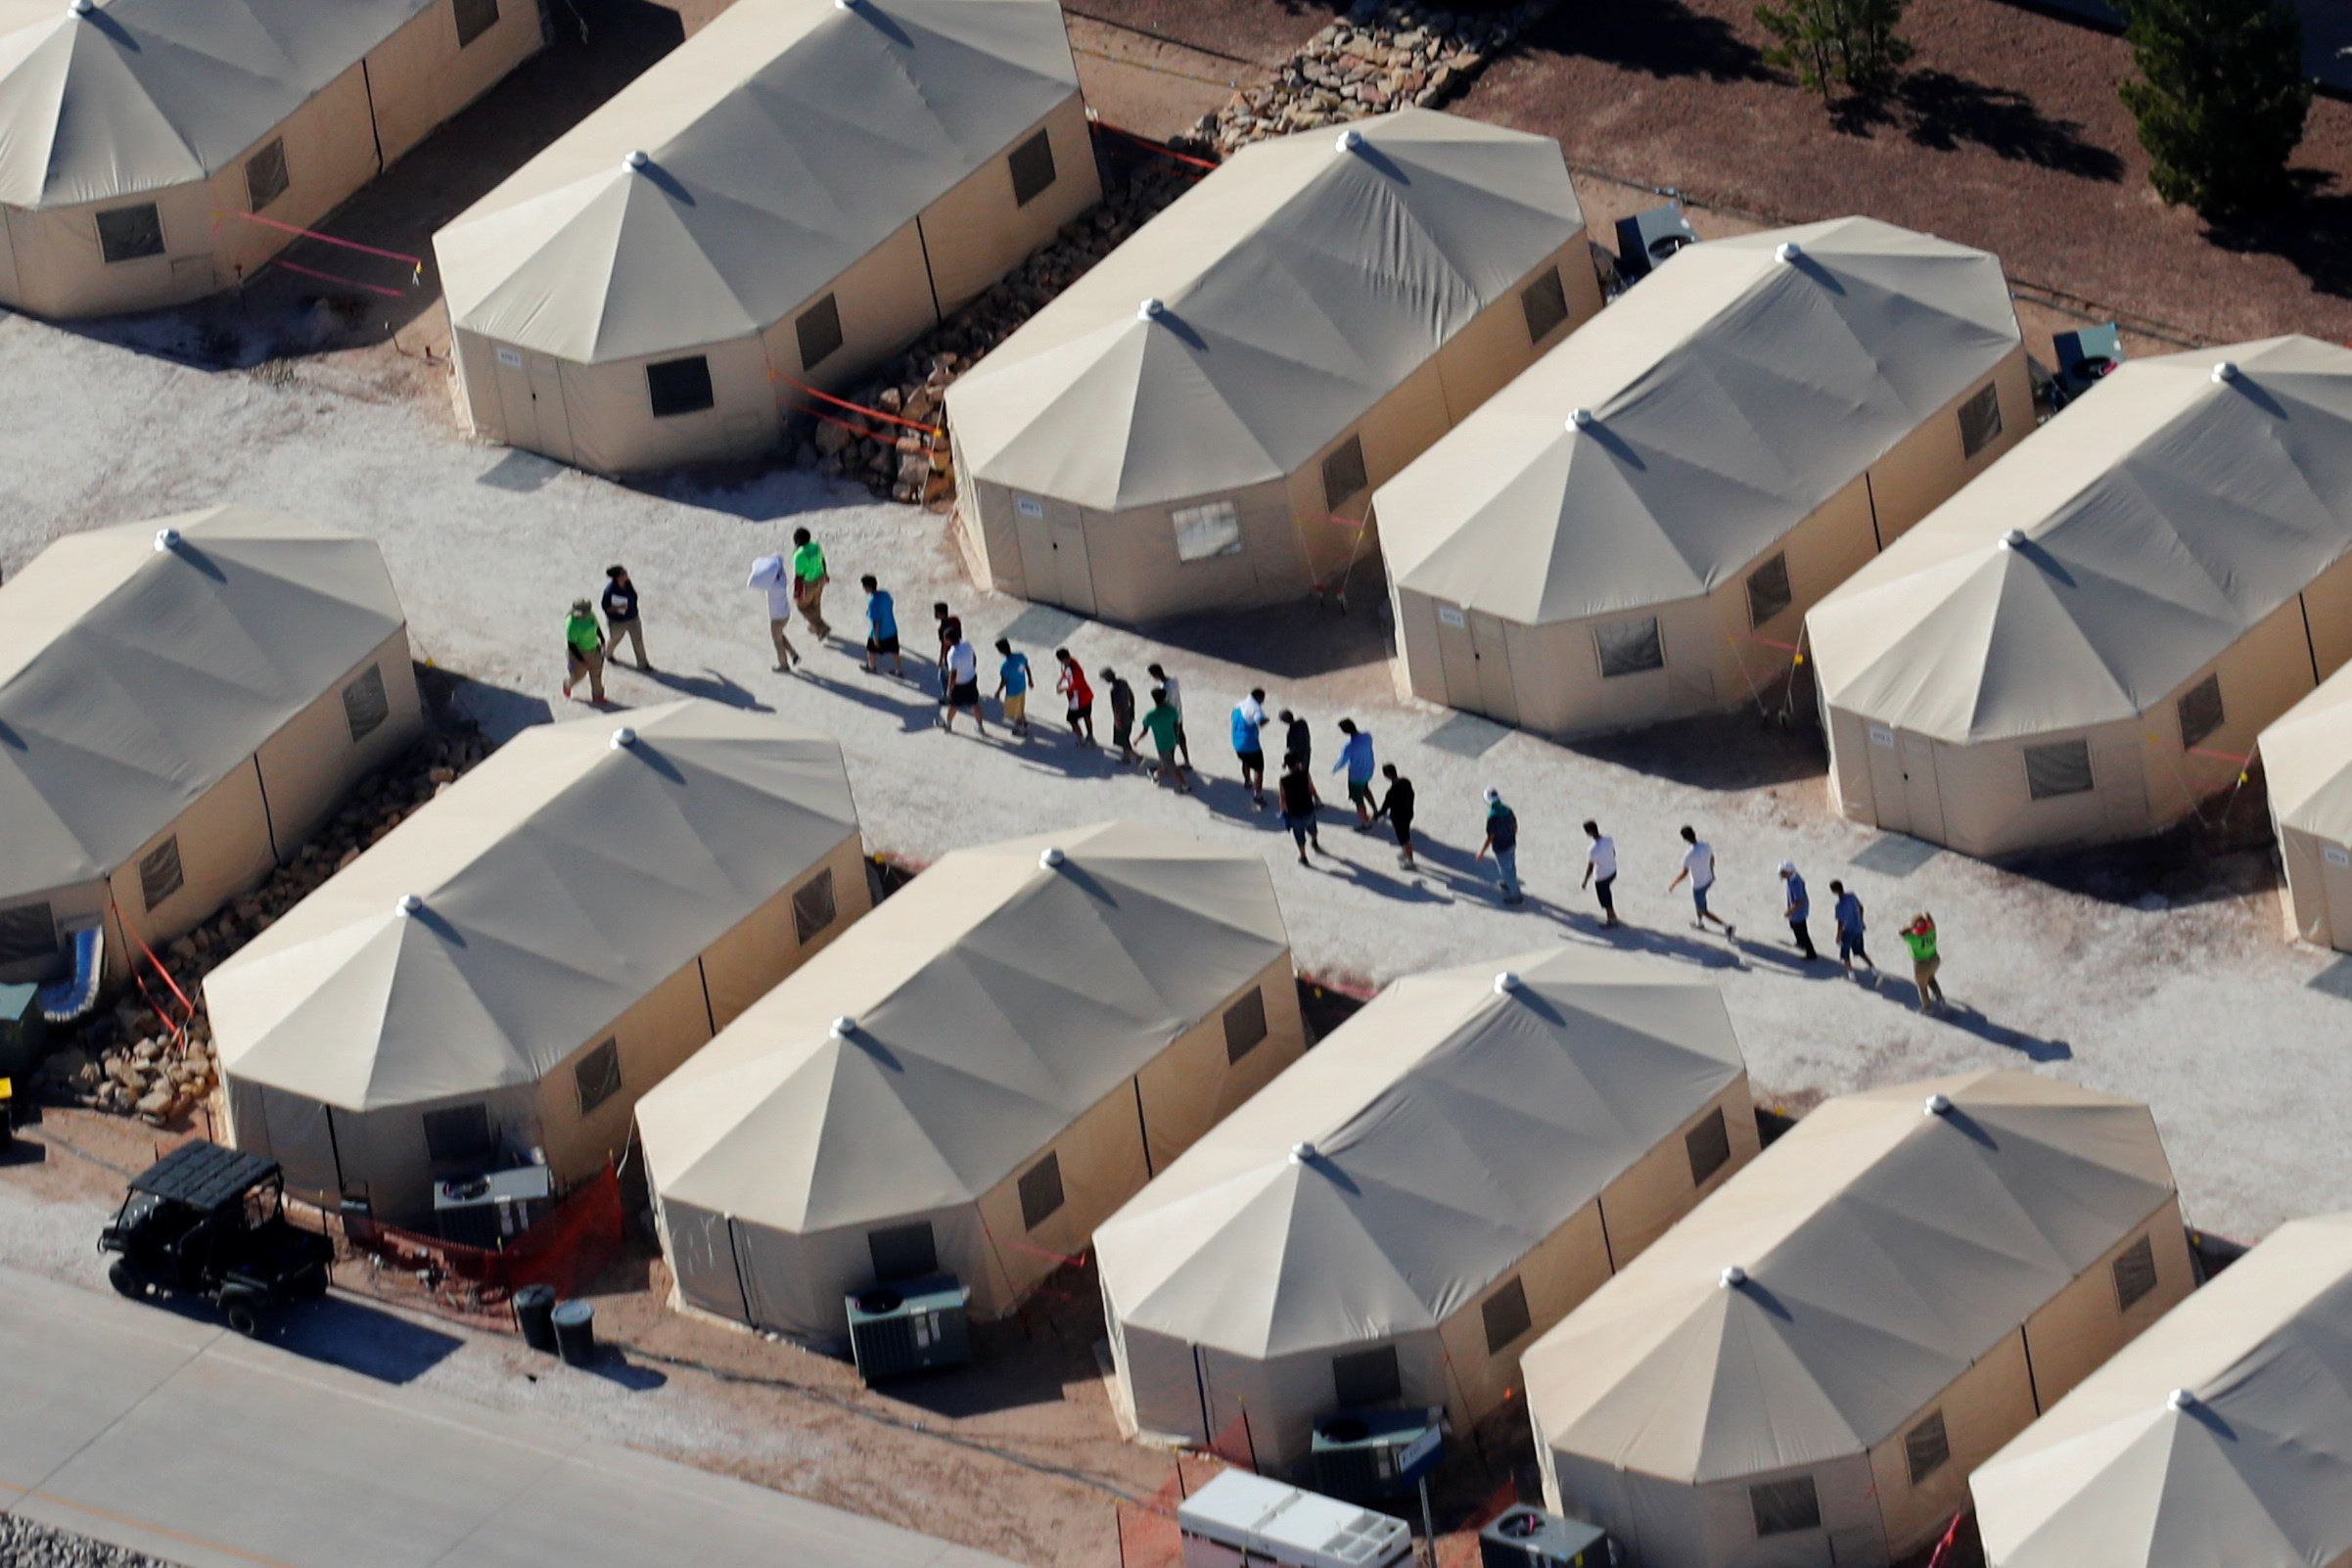 Immigrant children shown walking in single file at the Tornillo, Texas, tent city on June 19, 2018.